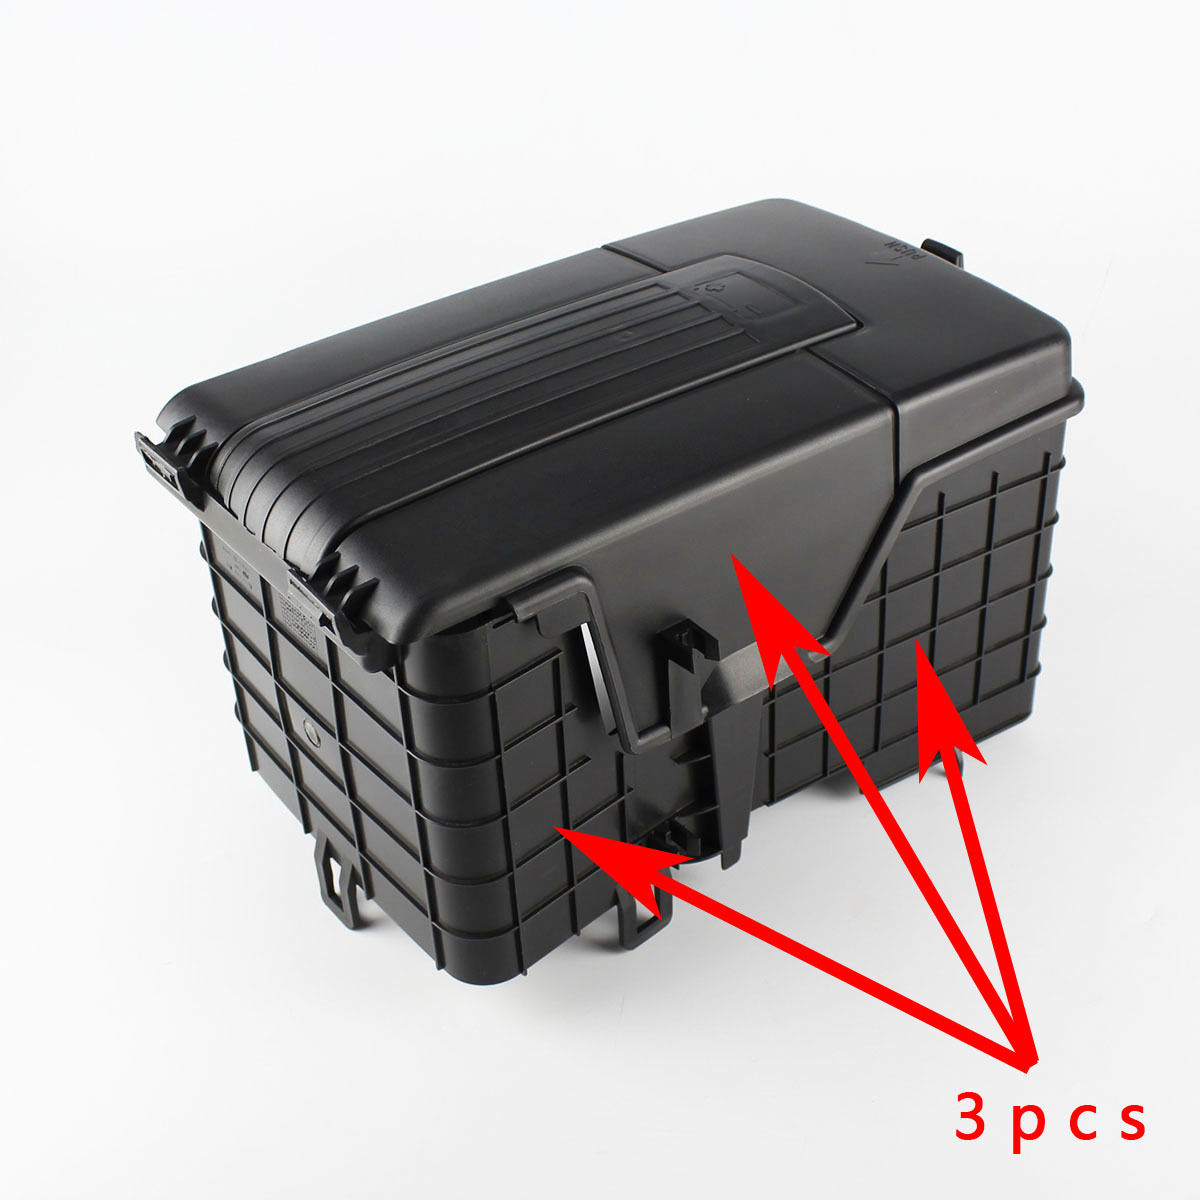 3pcs original battery tray trim cover fit for vw golf. Black Bedroom Furniture Sets. Home Design Ideas